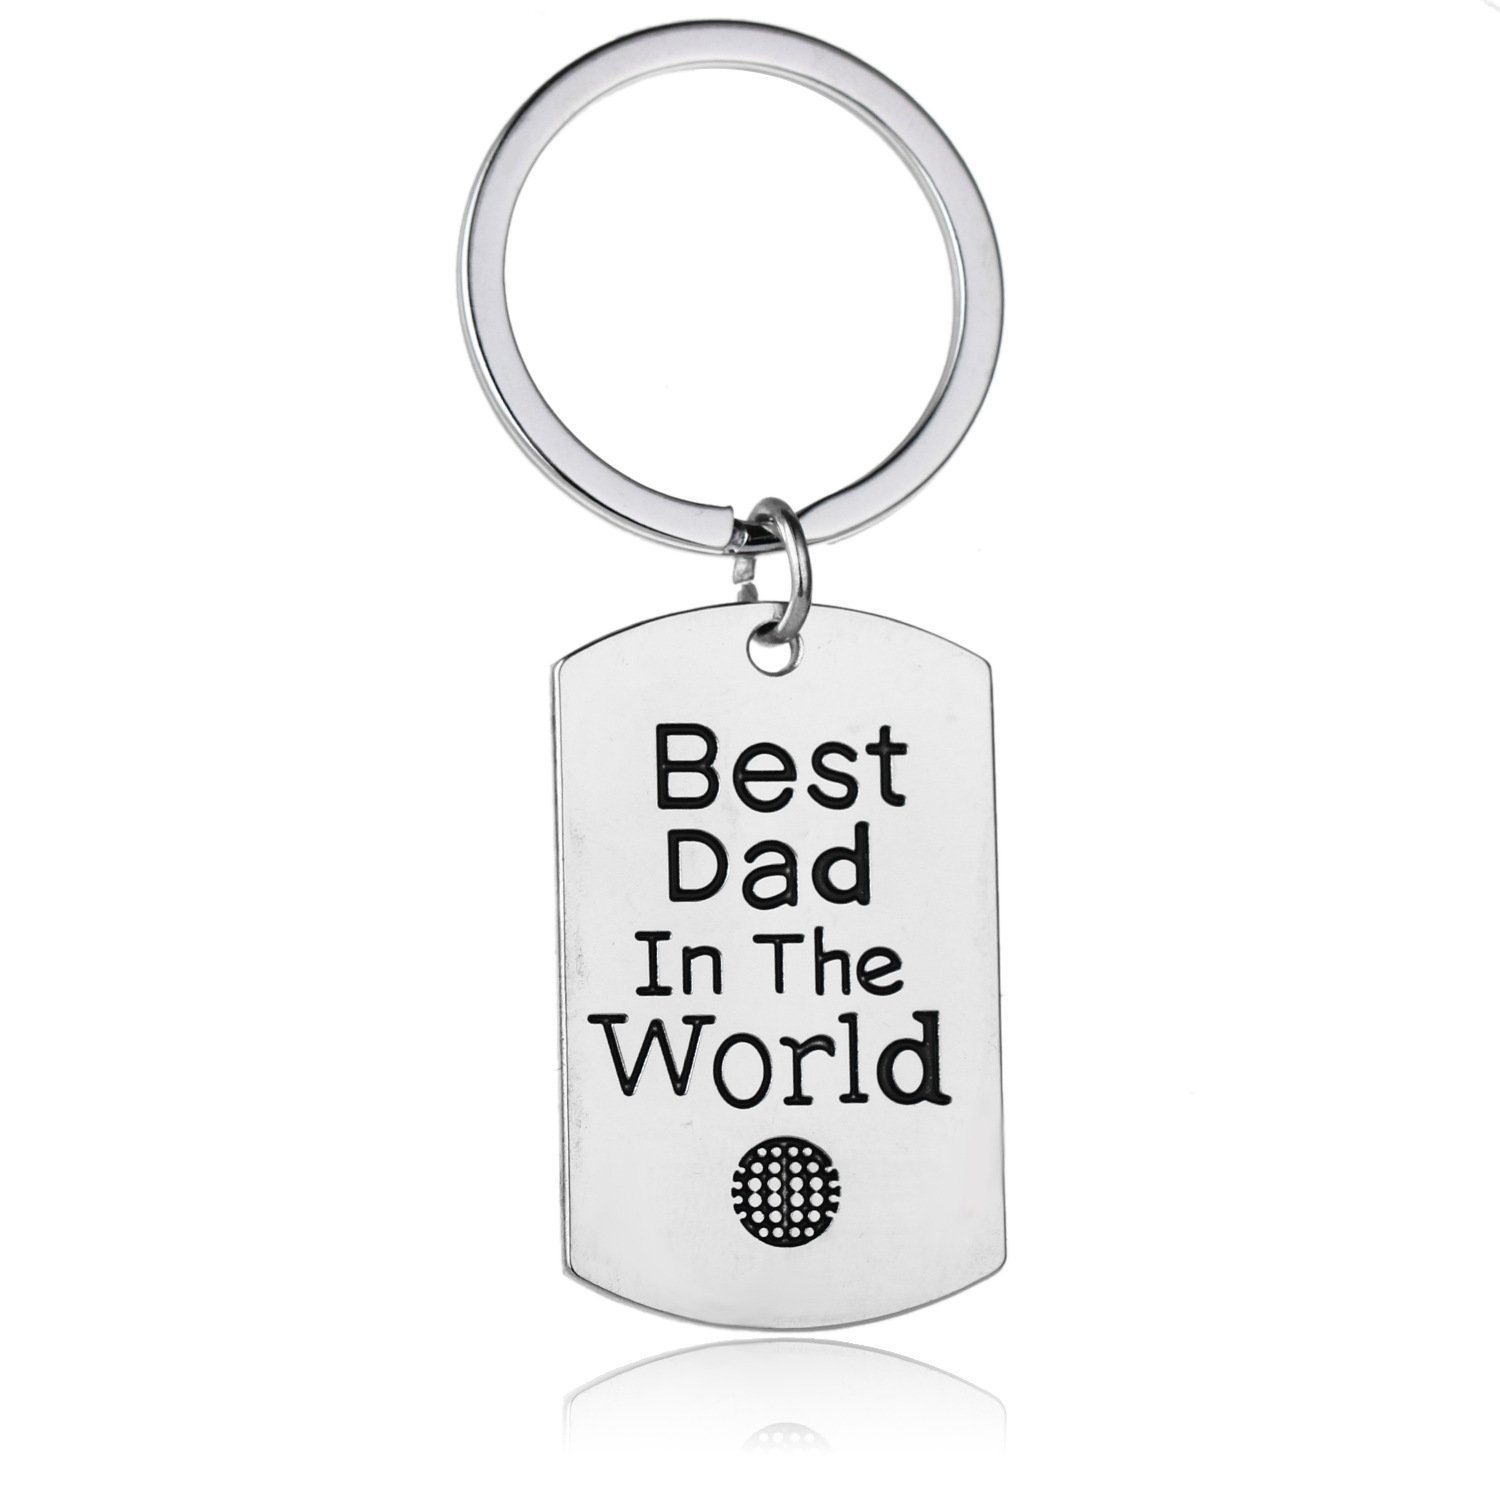 Fathers and Dads Birthday Gift Best Dad in The World Keychain Gift for Dad Fineder 1 Pack Key Chain Ring for Dad